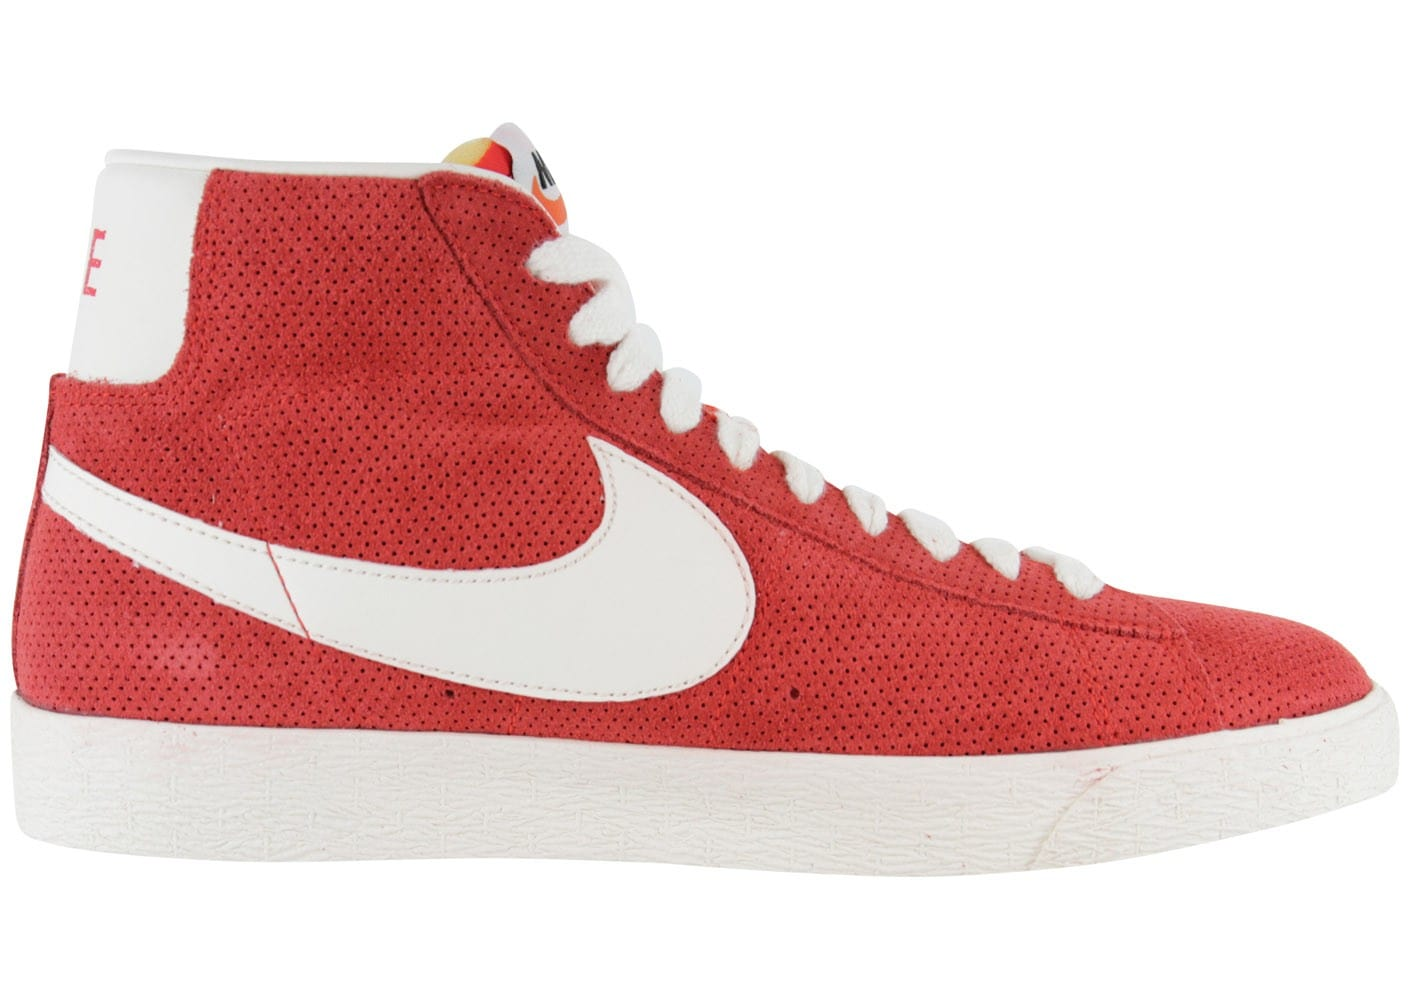 Nike Blazer Mid Rouge Corail Chaussures Baskets homme